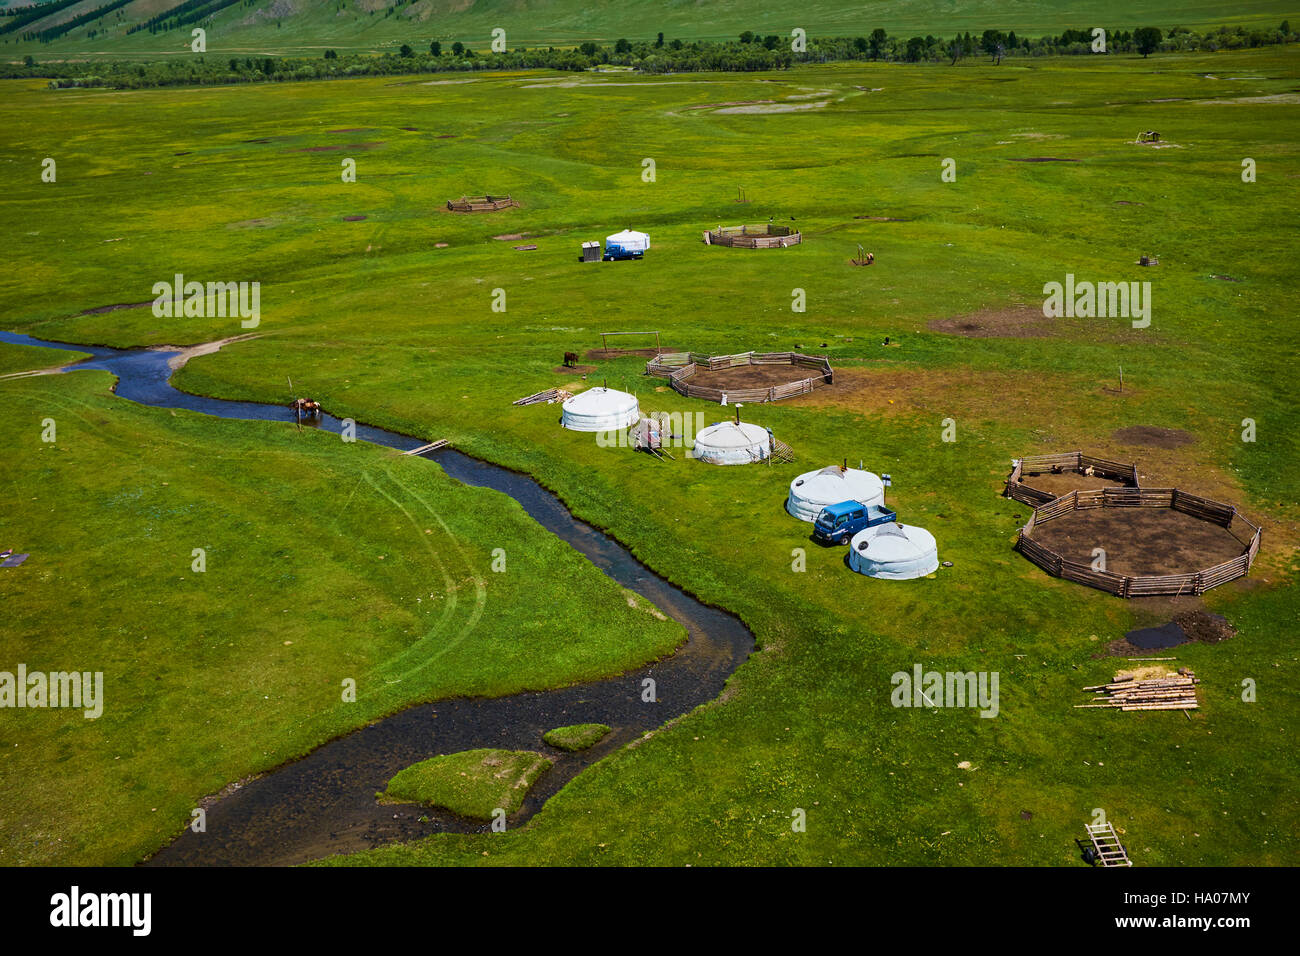 Mongolia, Arkhangai province, yurt nomad camp in the steppe - Stock Image